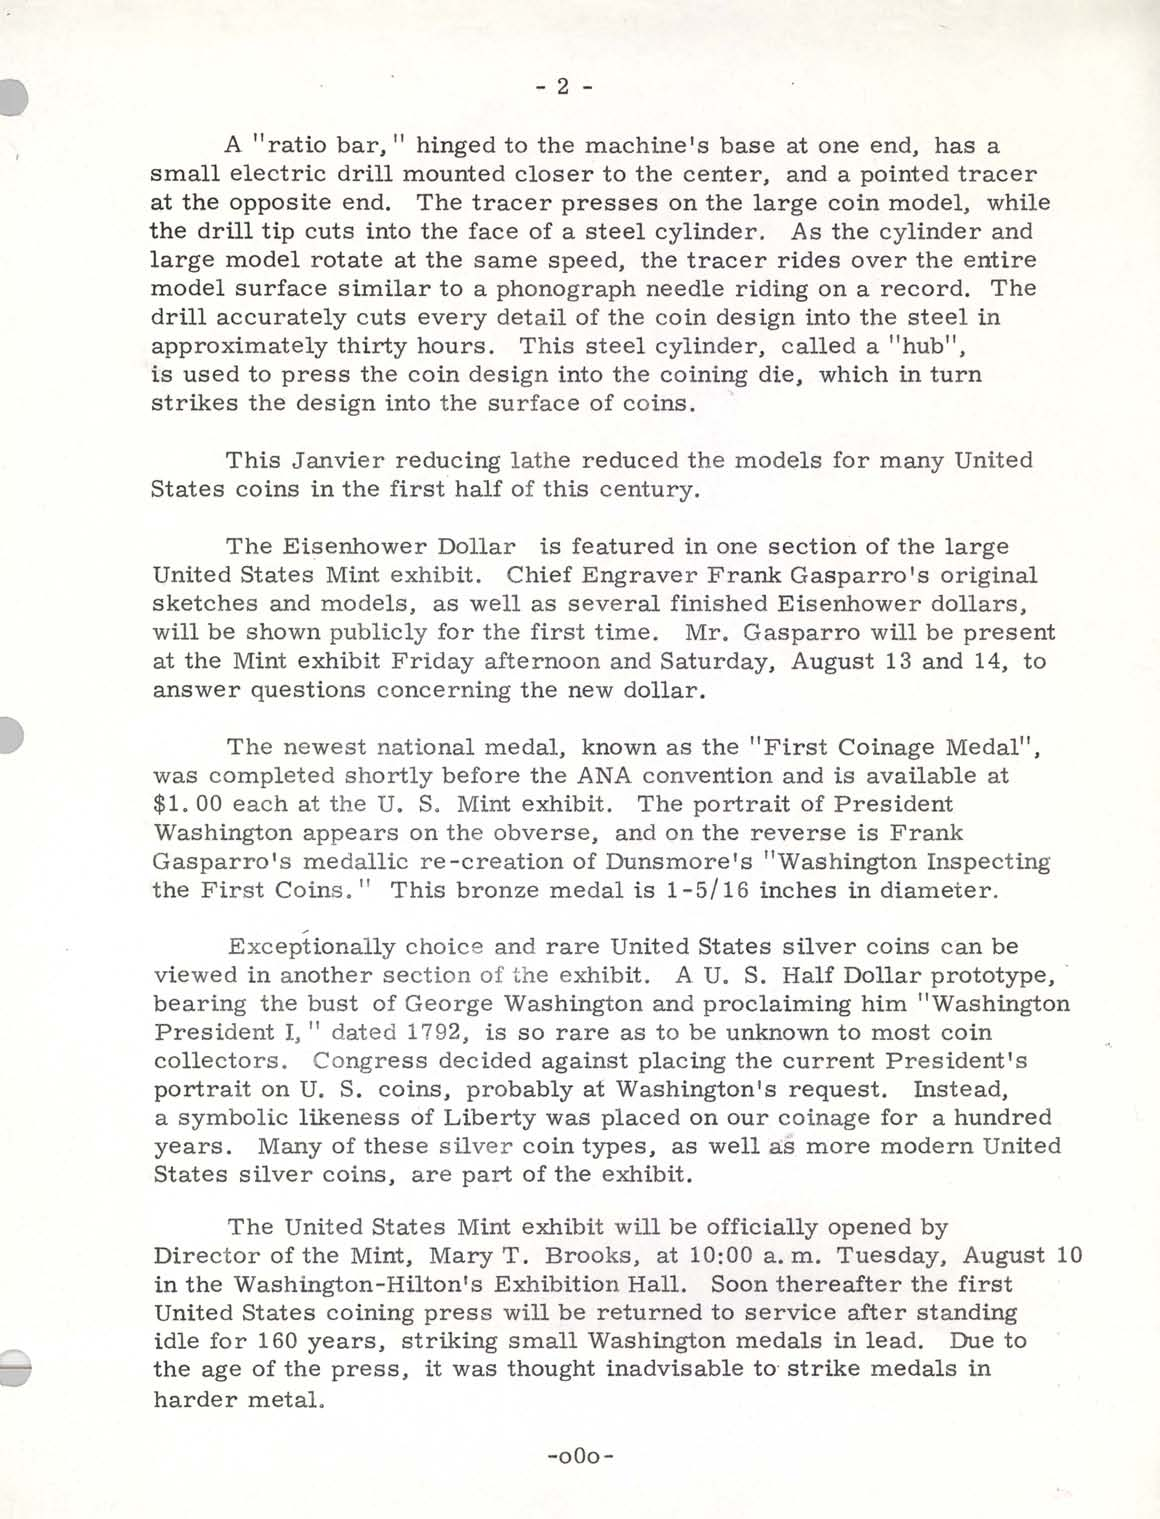 Historic Press Release: Mint Exhibit at ANA 1971, Page 2